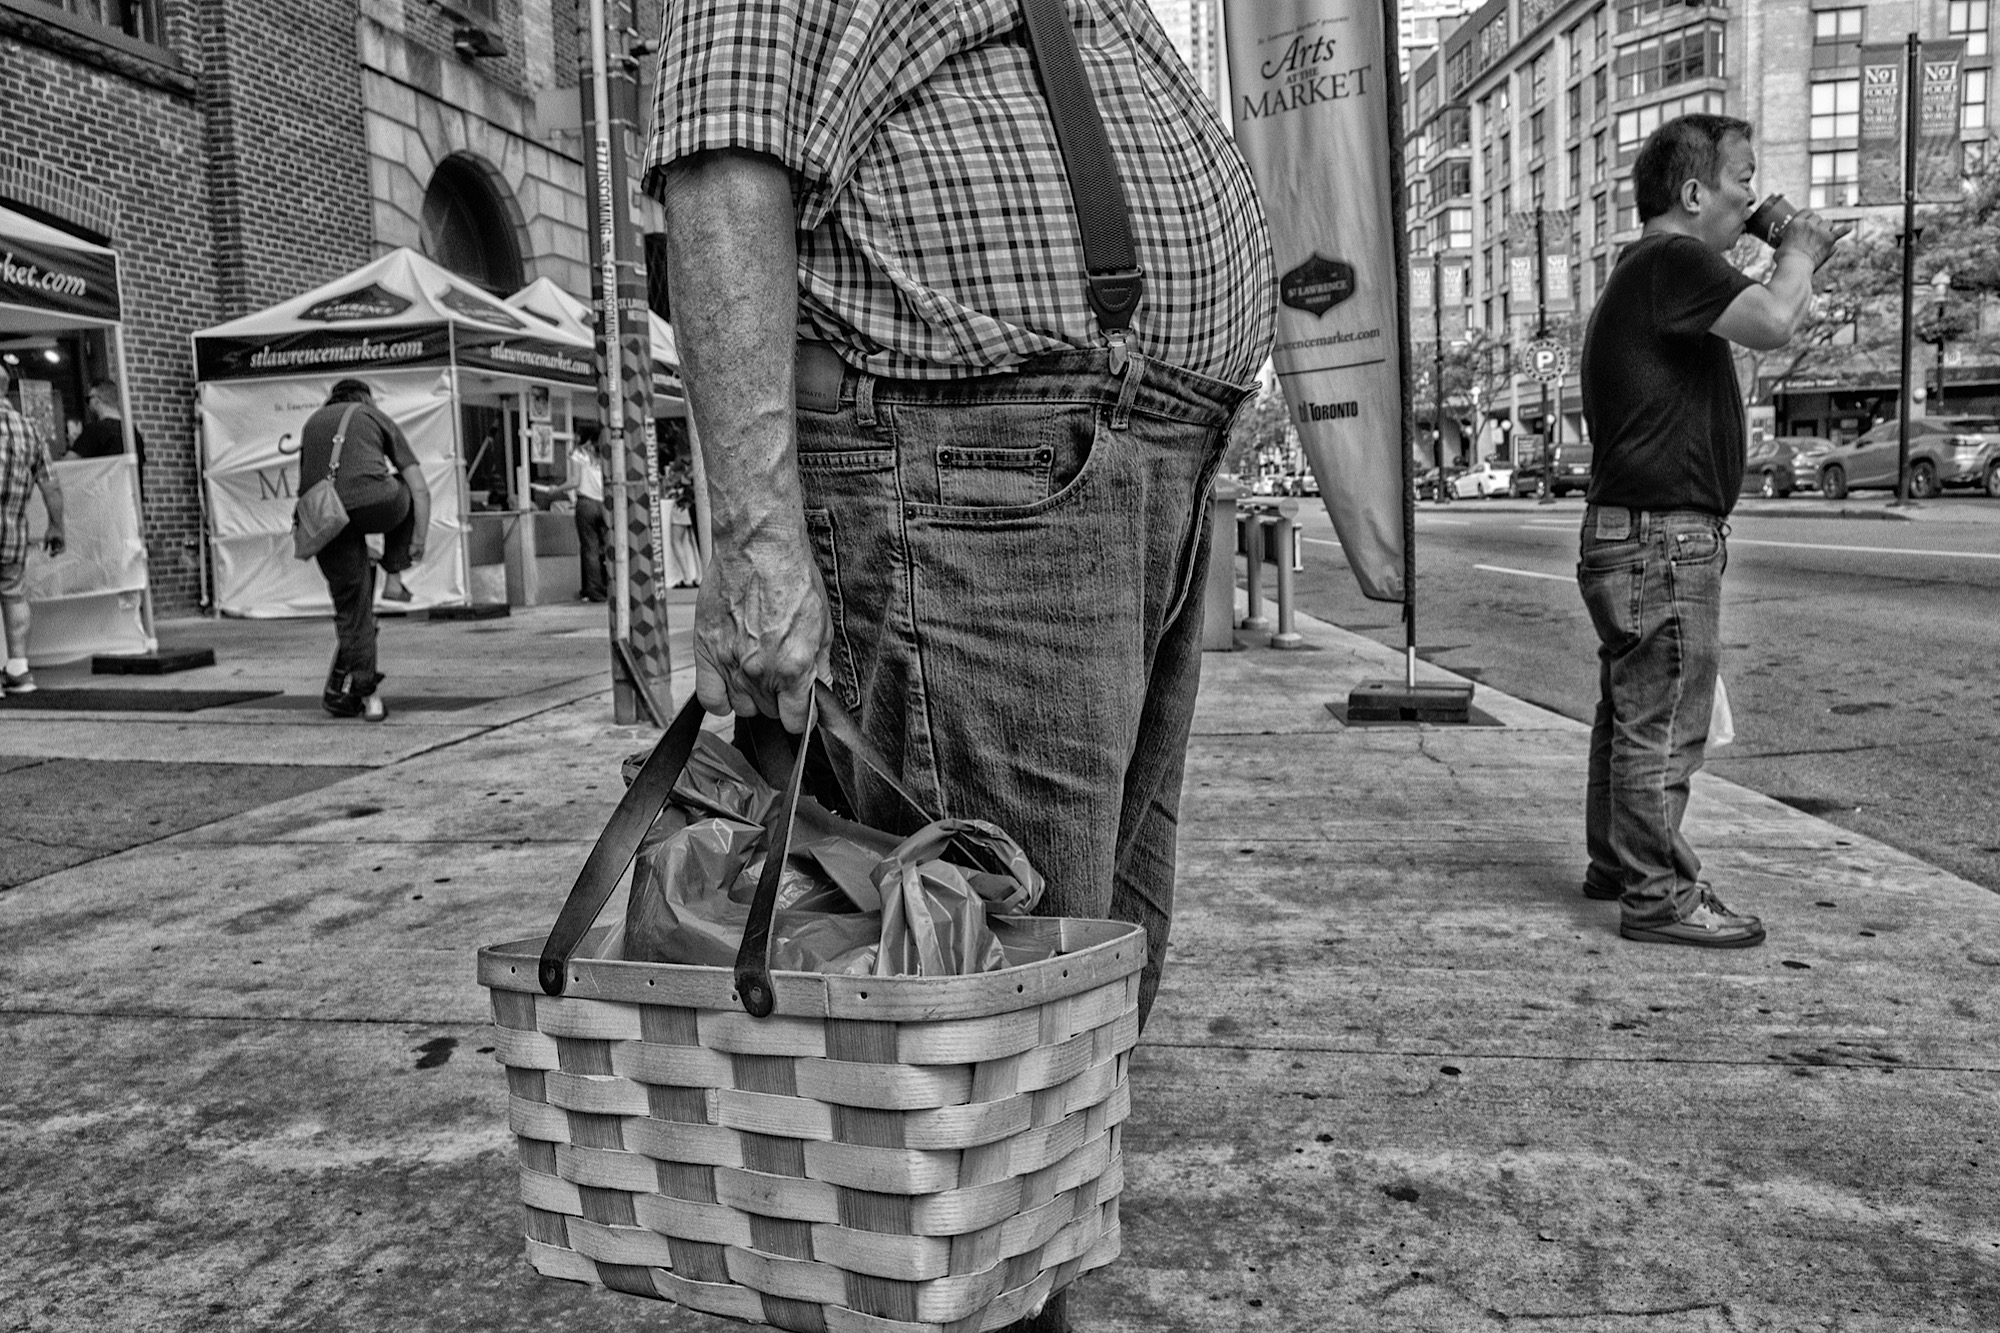 Photo by Shar H. Used with permission. You can see Shar's b&w gallery on Instagram at @findinginterestingpeople, her new color street photography account at @colormystreet, and her first gallery of pictures taken mostly with an iPhone at @Phillylady2.